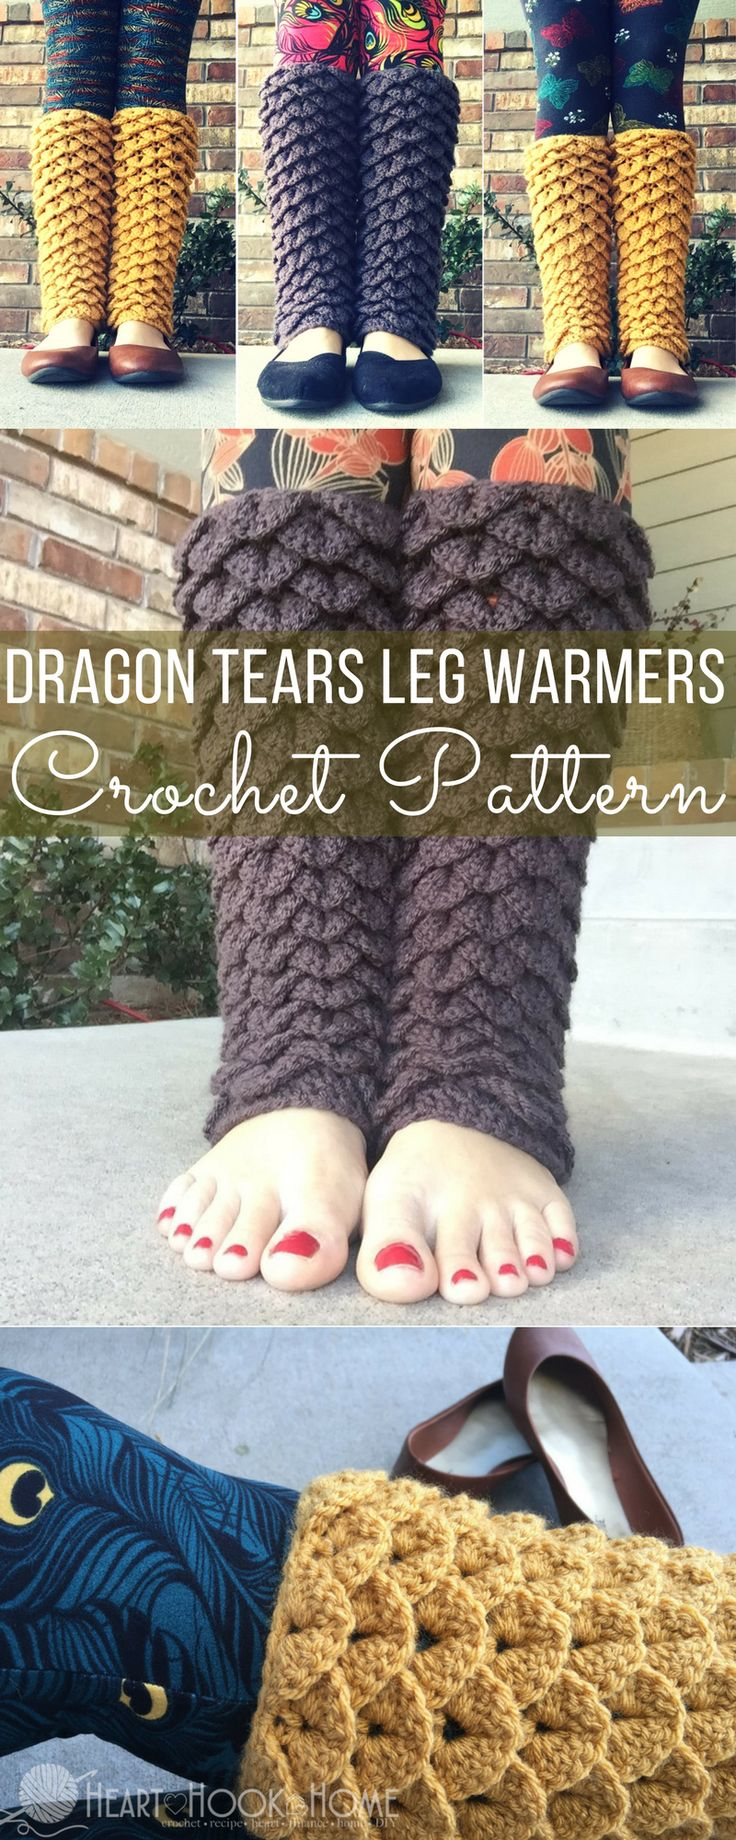 Dragon Tears Leg Warmers Crochet Pattern http://hearthookhome.com/dragon-tears-leg-warmers-crochet-pattern/?utm_campaign=coschedule&utm_source=pinterest&utm_medium=Ashlea%20K%20-%20Heart%2C%20Hook%2C%20Home&utm_content=Dragon%20Tears%20Leg%20Warmers%20Crochet%20Pattern